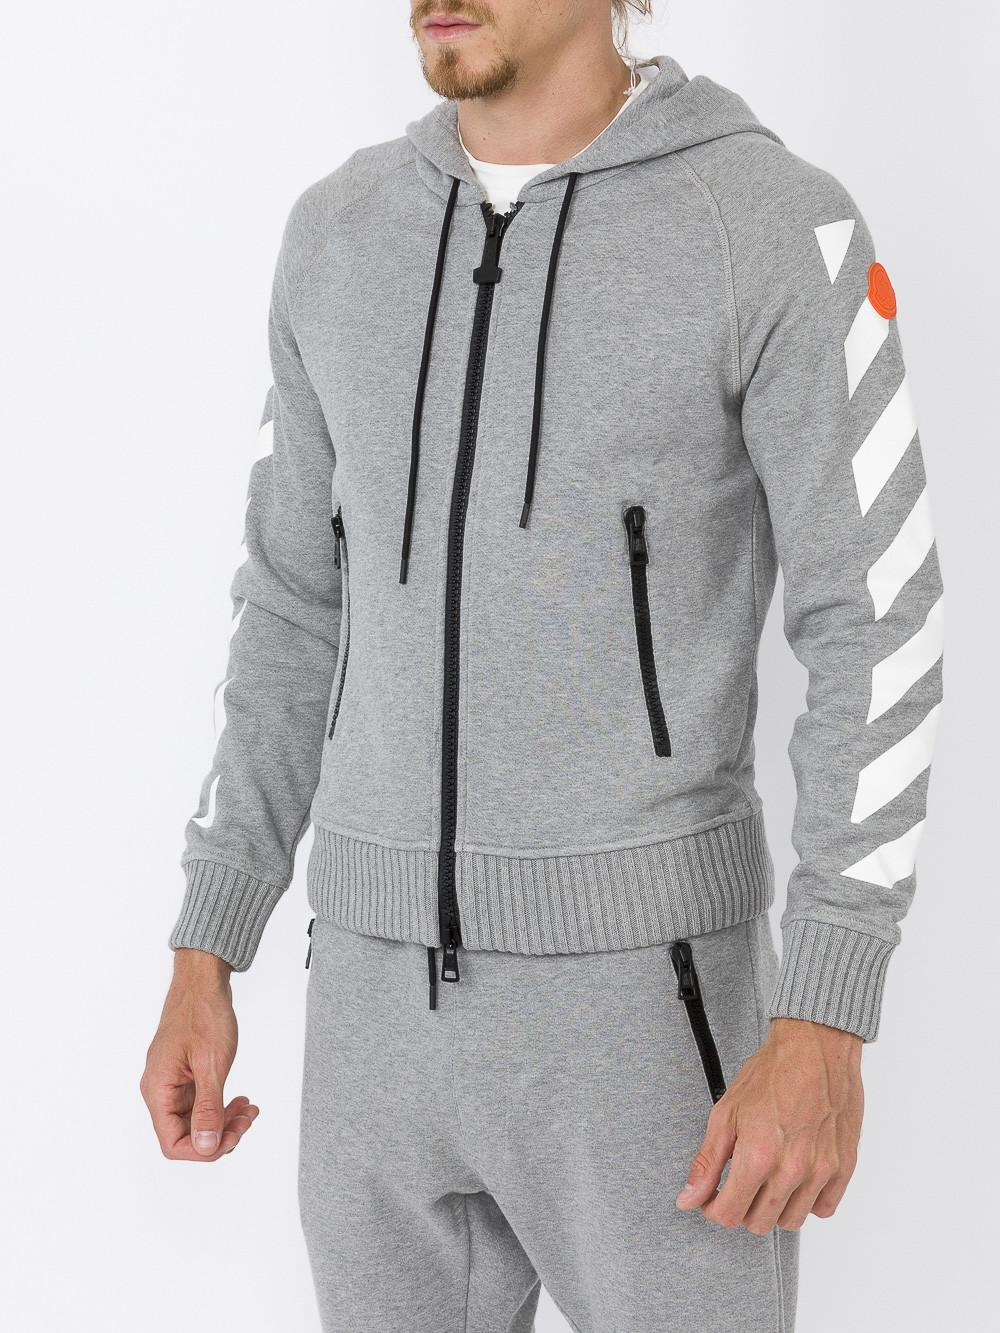 off white x moncler hoodie